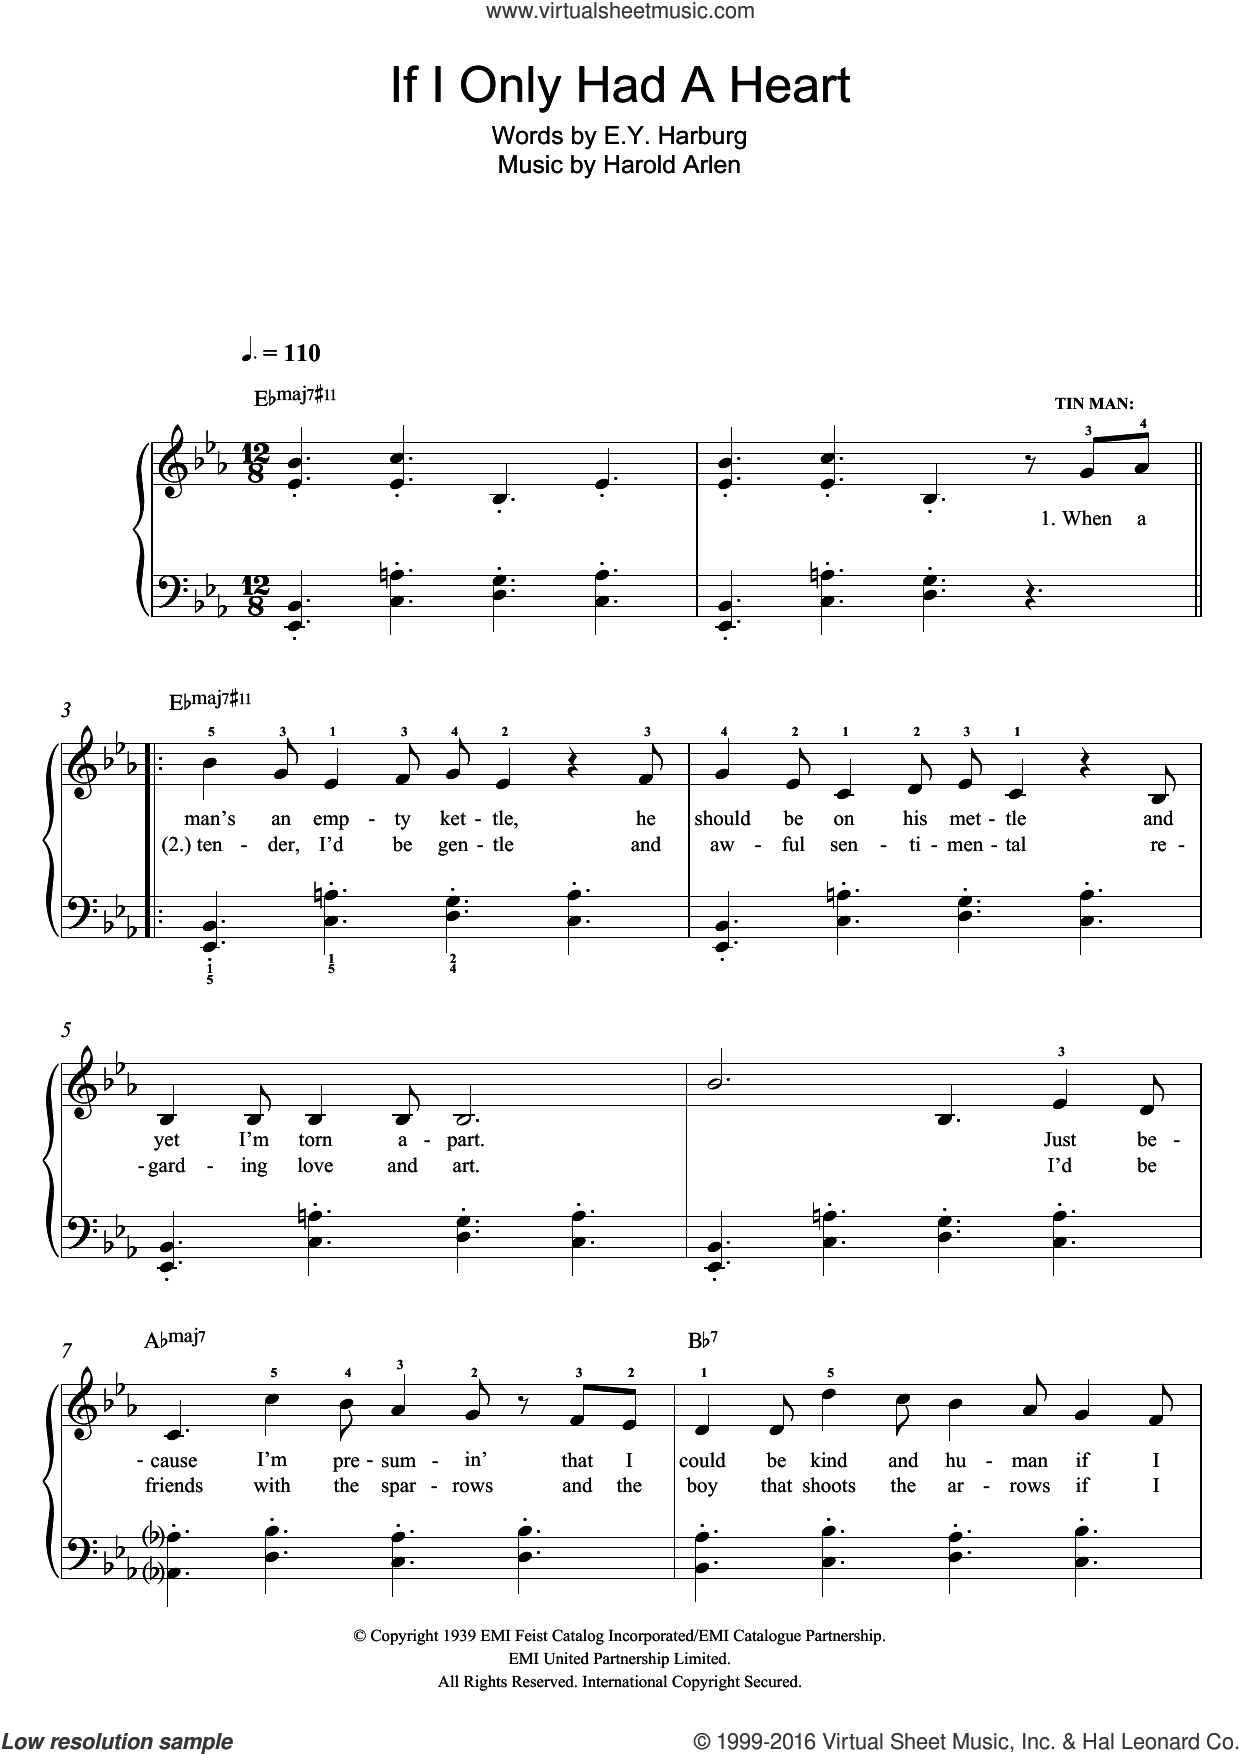 If I Only Had A Heart sheet music for piano solo by Harold Arlen and E.Y. Harburg, easy skill level